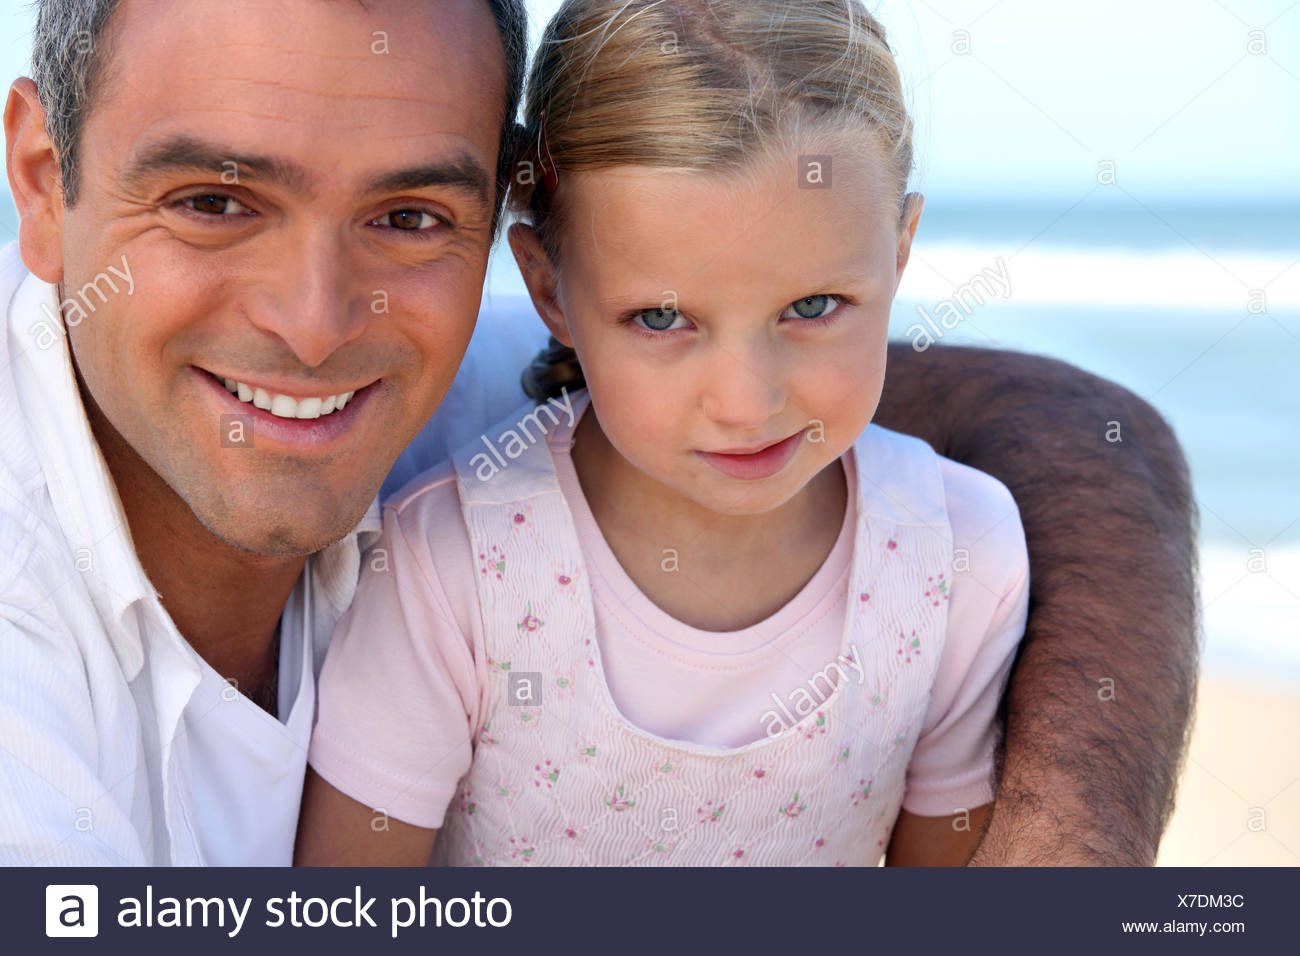 single parent daddy - Stock Image